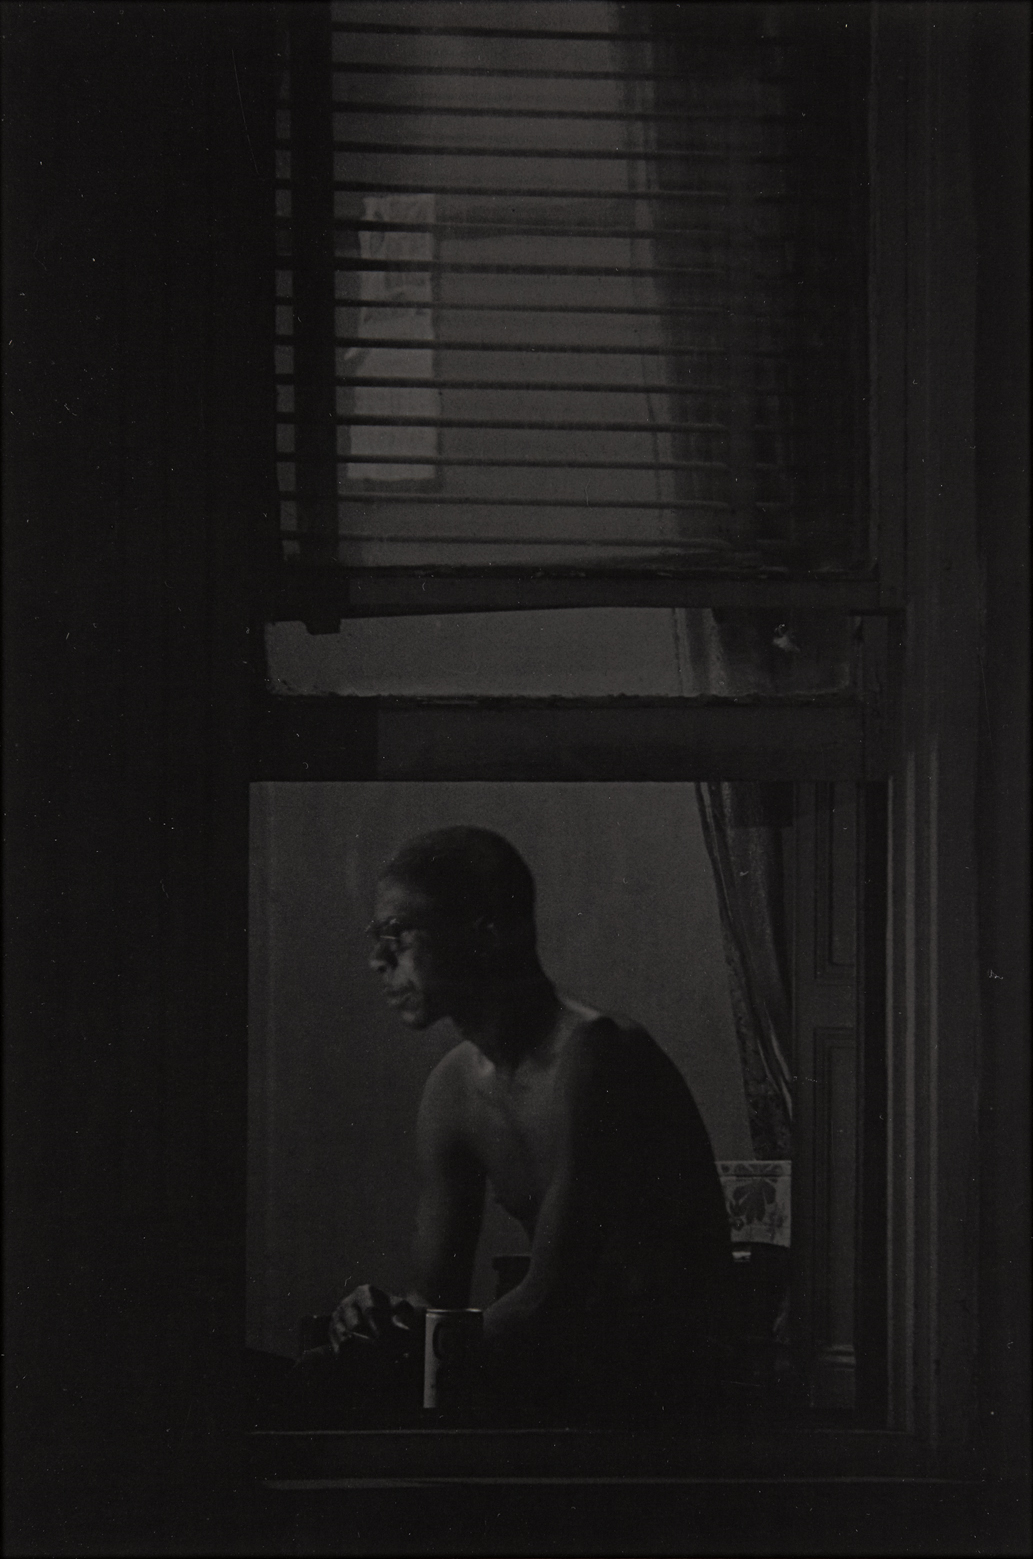 RT @damanibaker: Man in Window by Roy DeCarava. (1978) Processing the systemic disregard for human life with art therapy. http://t.co/uMs1B…